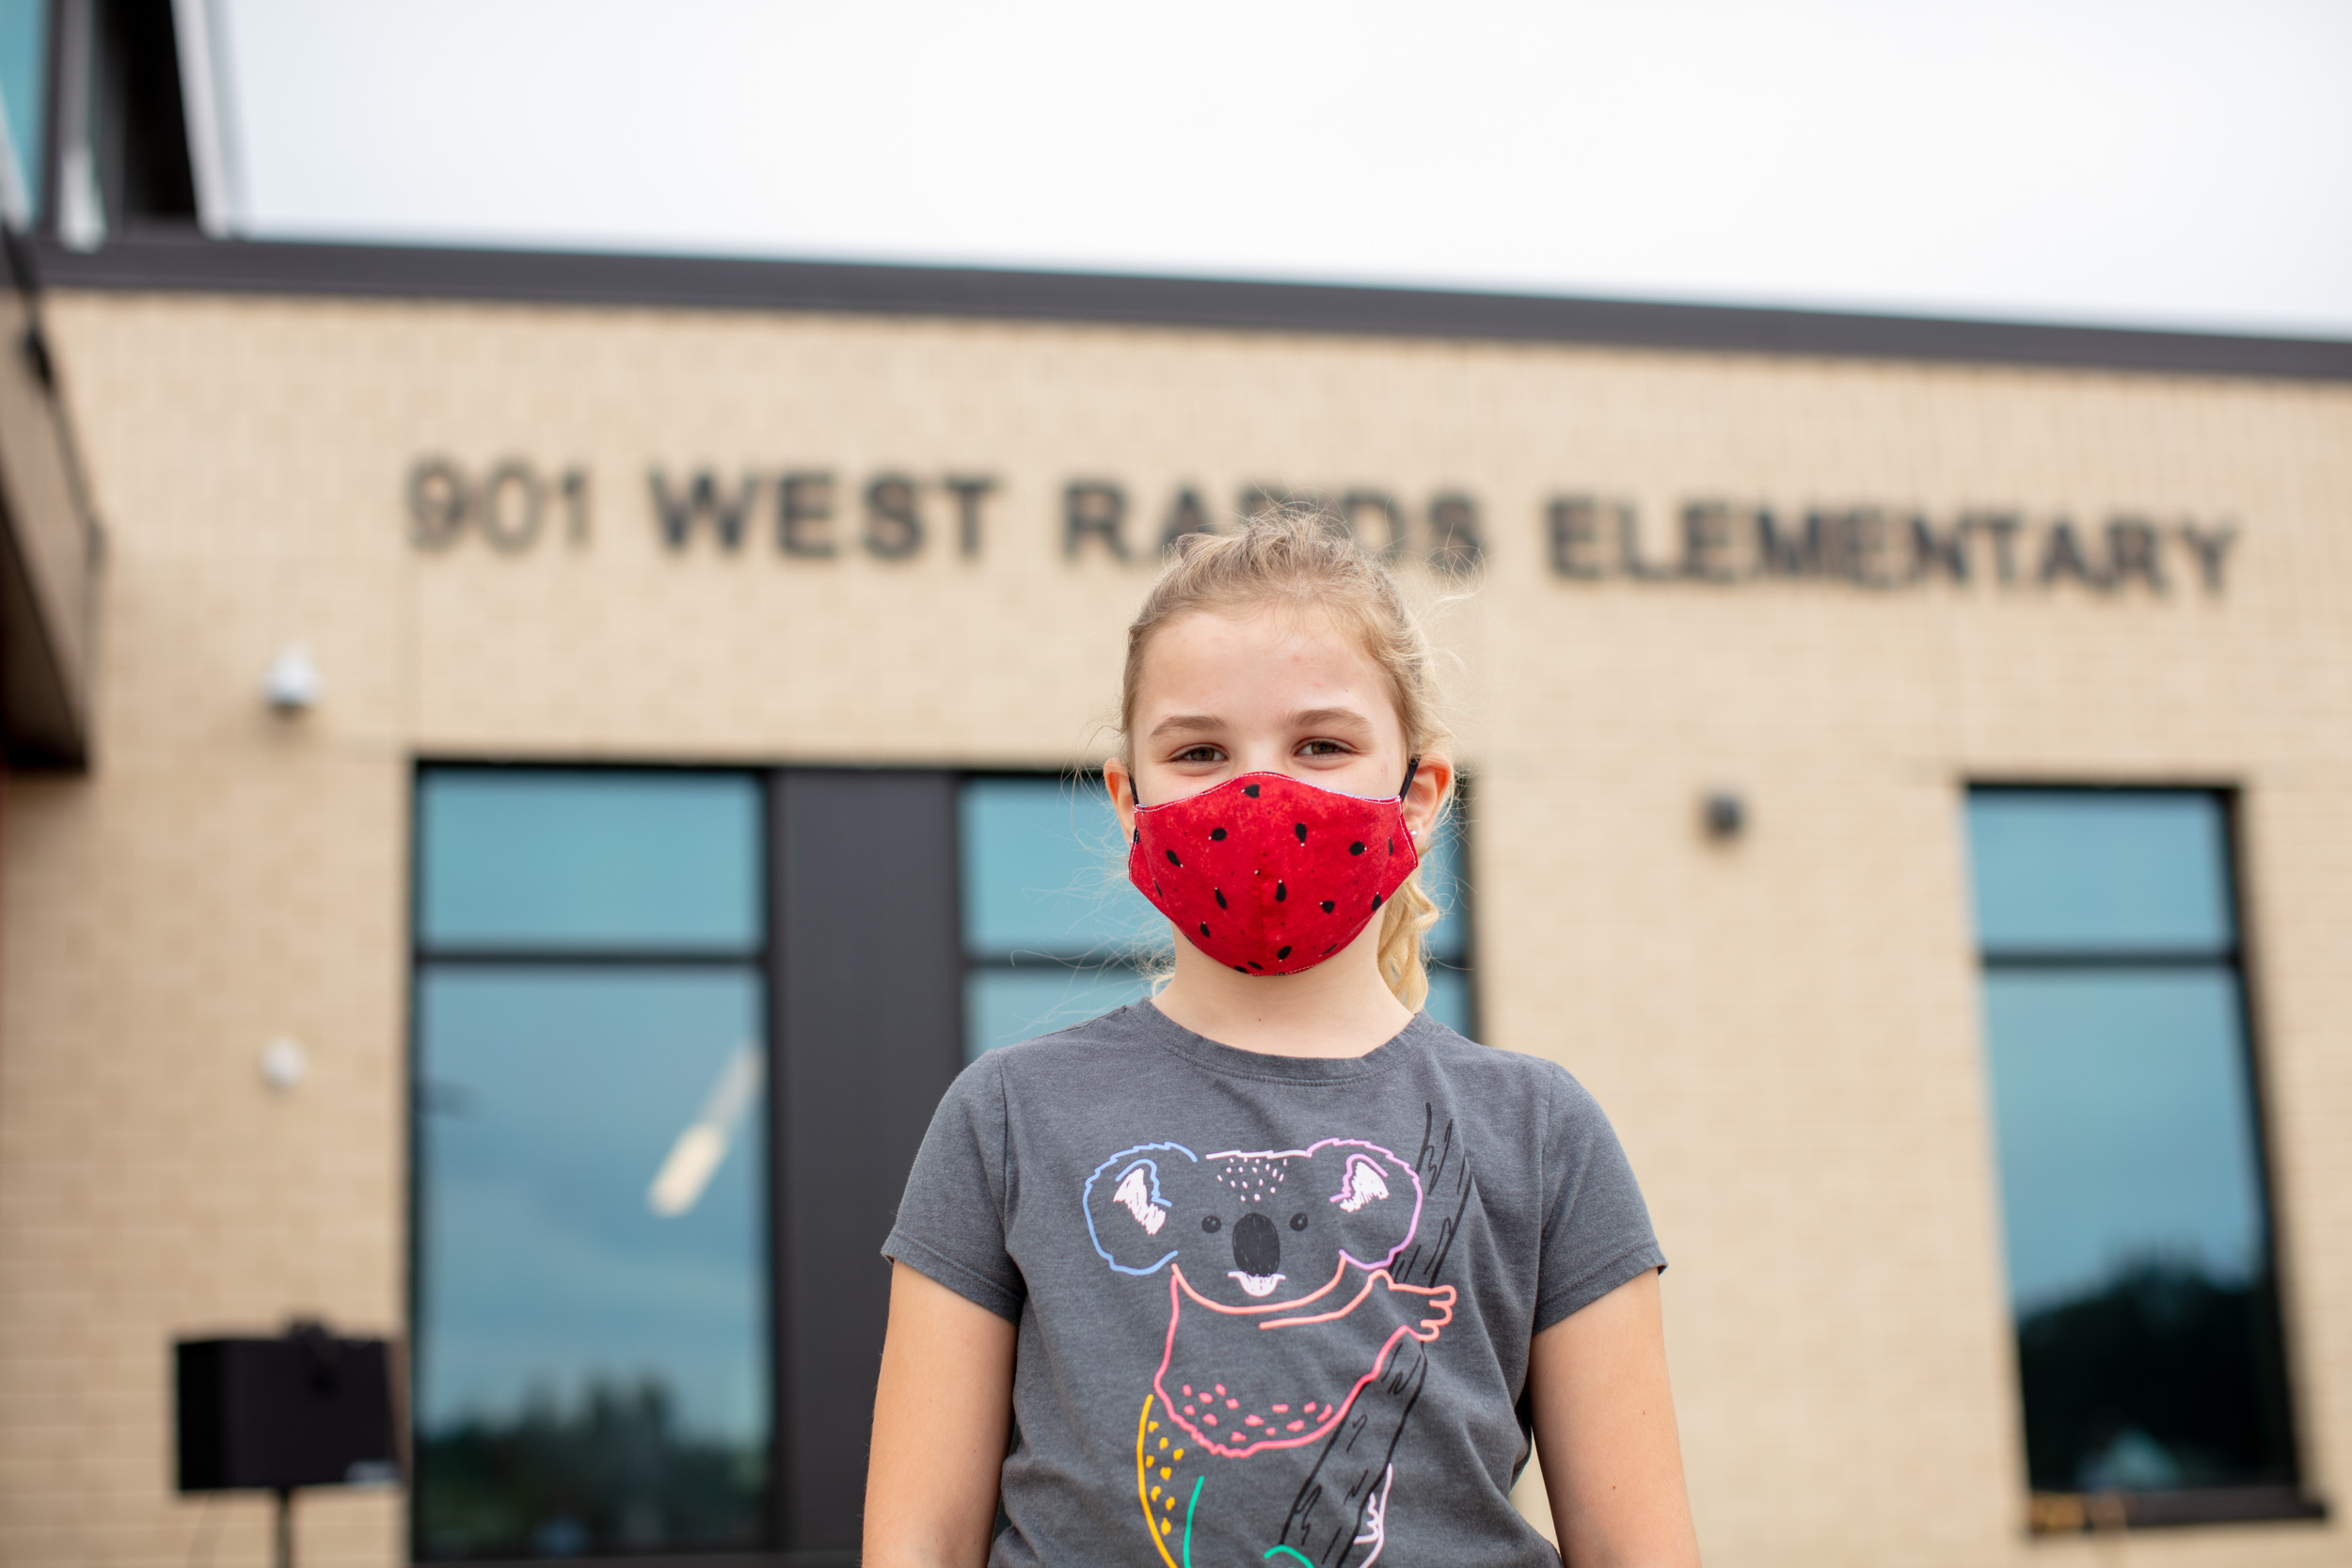 West Rapids Elementary School Ribbon Cutting.  Grand Rapids, Minnesota.